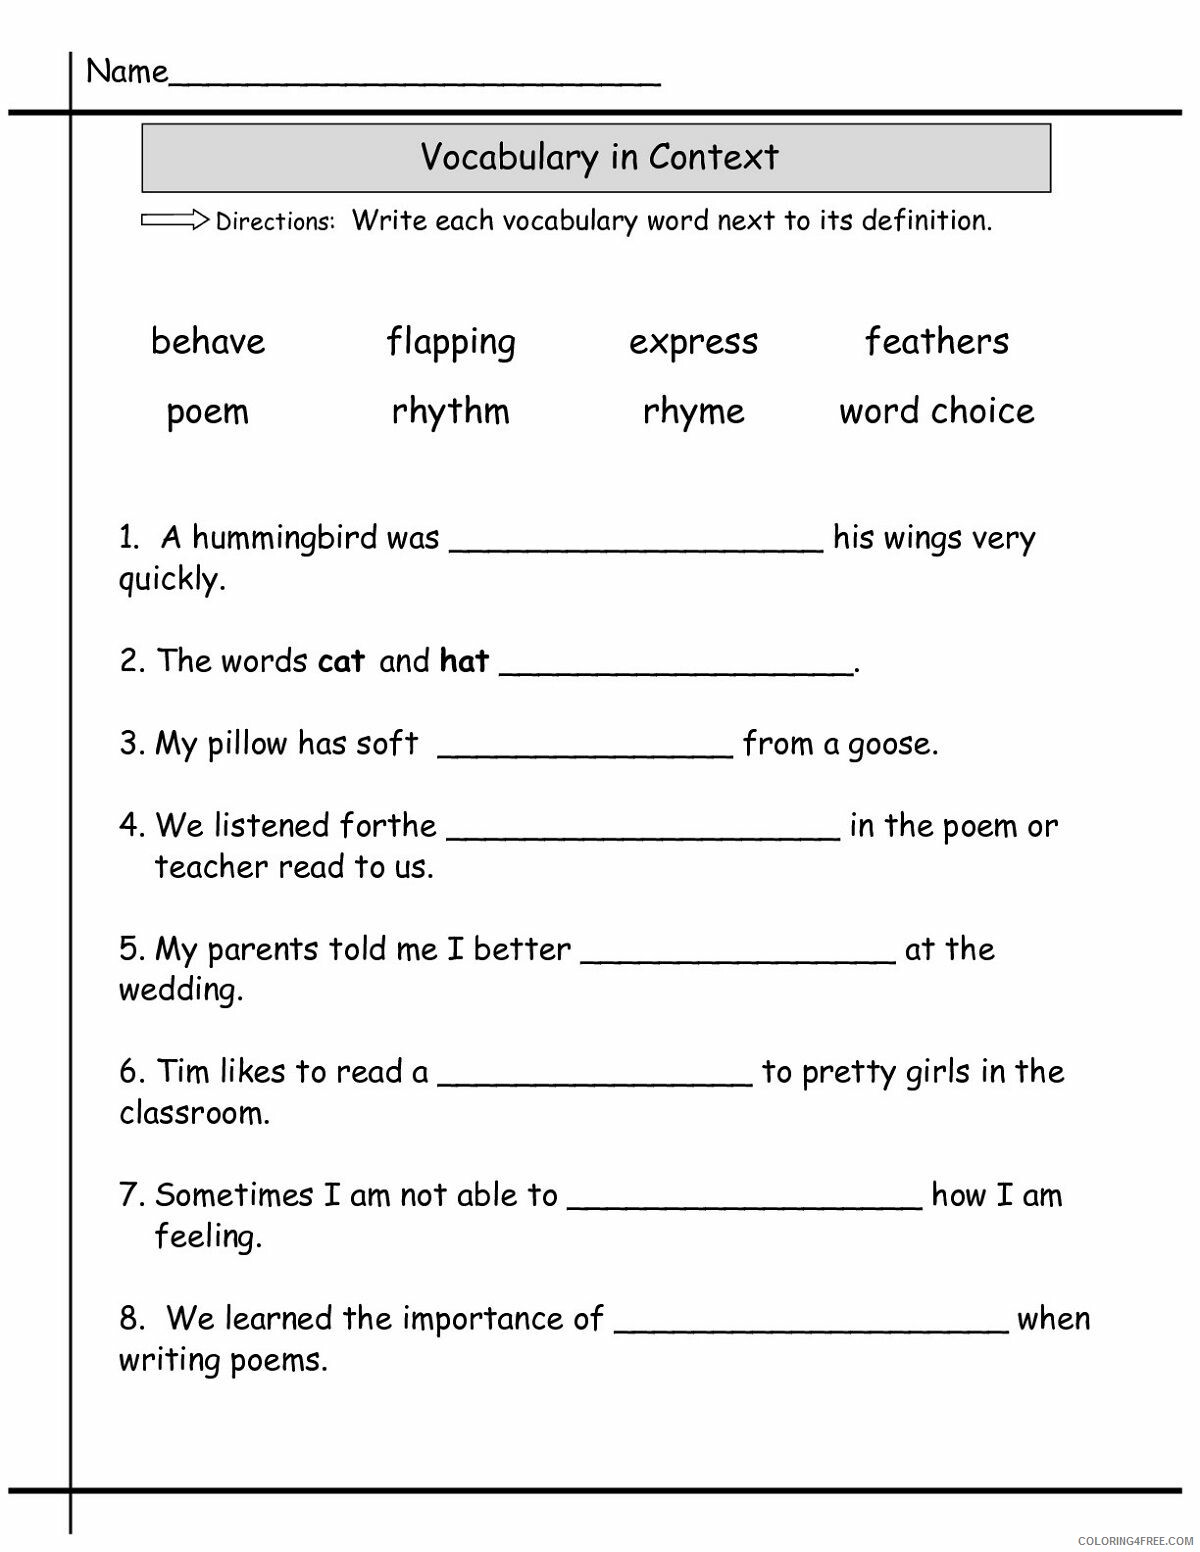 hight resolution of 2nd Grade Coloring Pages Educational English Worksheets Vocabulary 2020  0129 Coloring4free - Coloring4Free.com